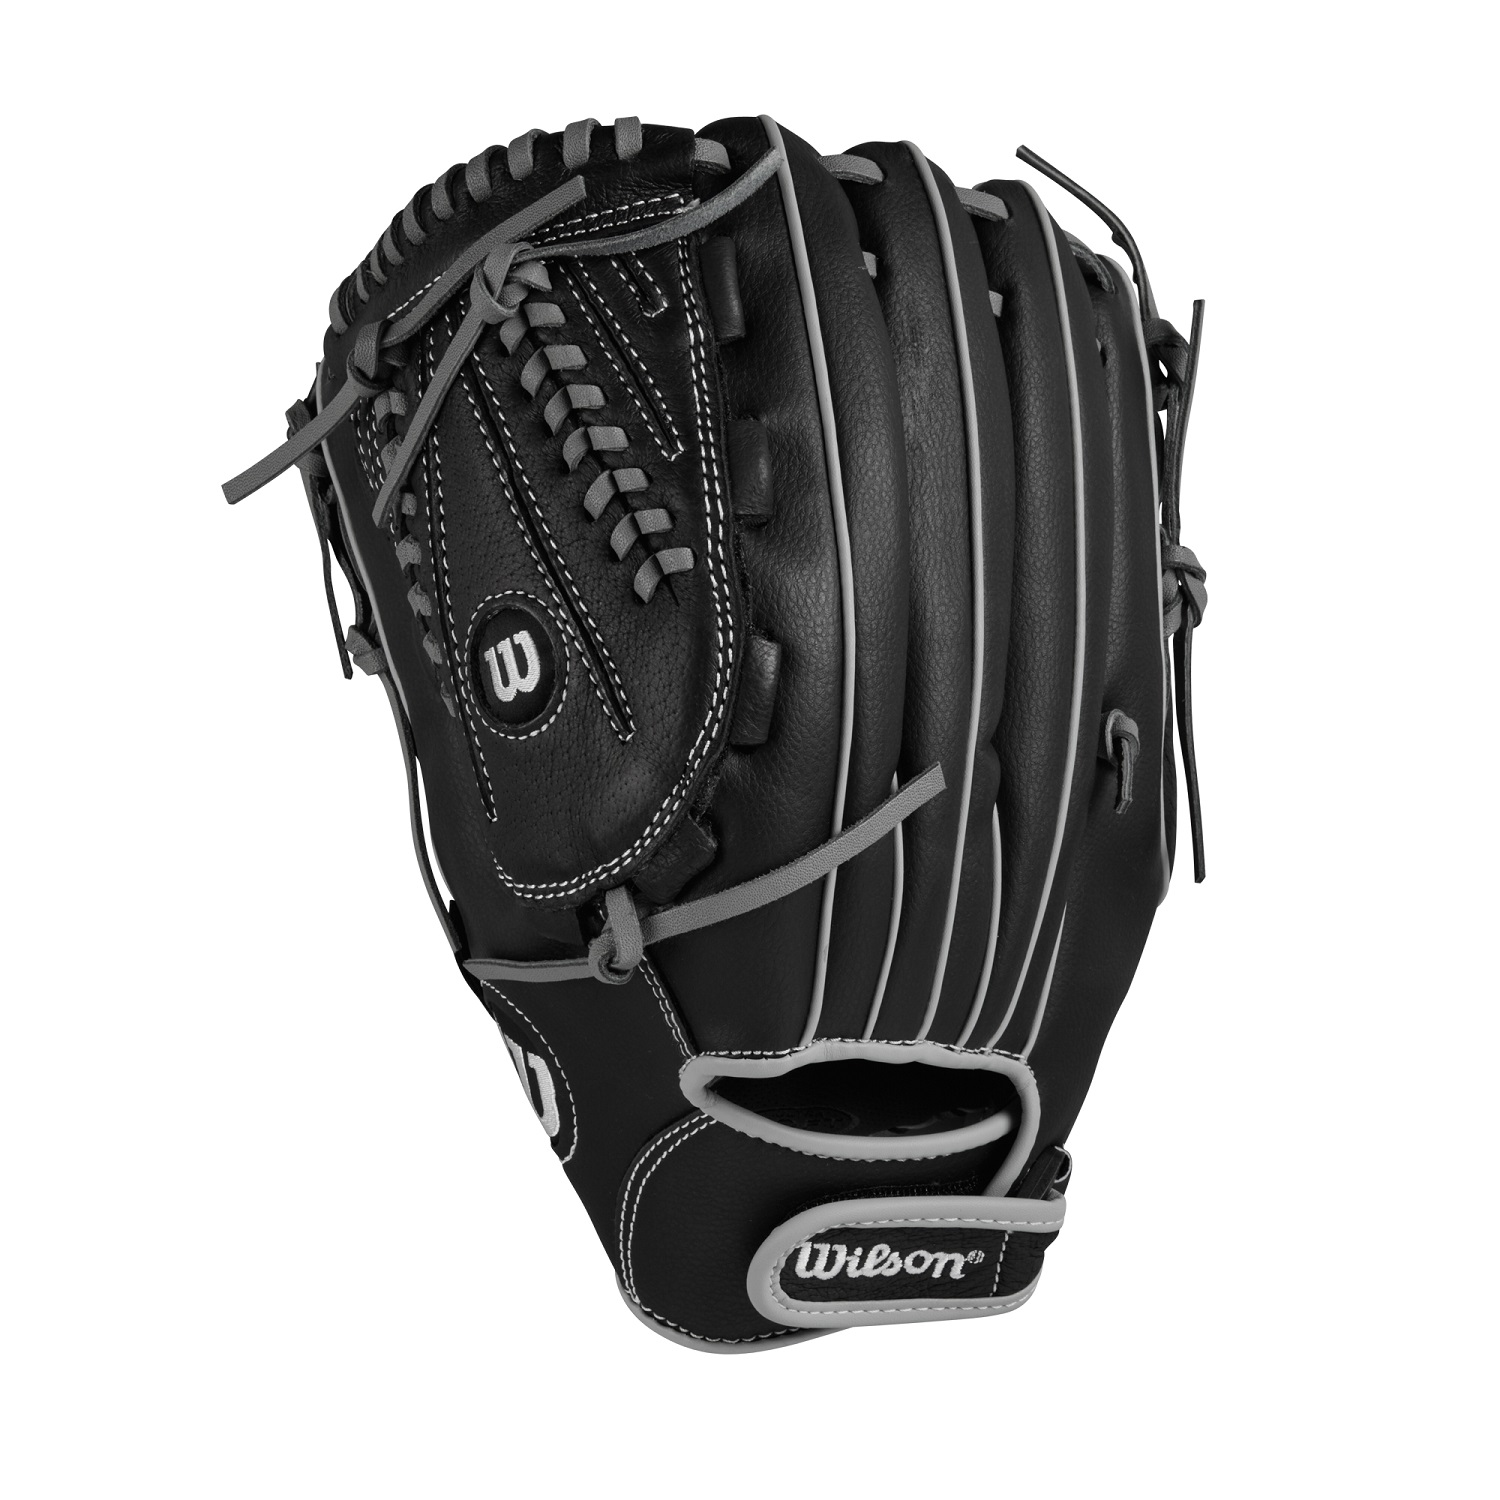 "Wilson 13"" A360 Series Slowpitch Softball Glove, Right Hand Throw by Wilson"